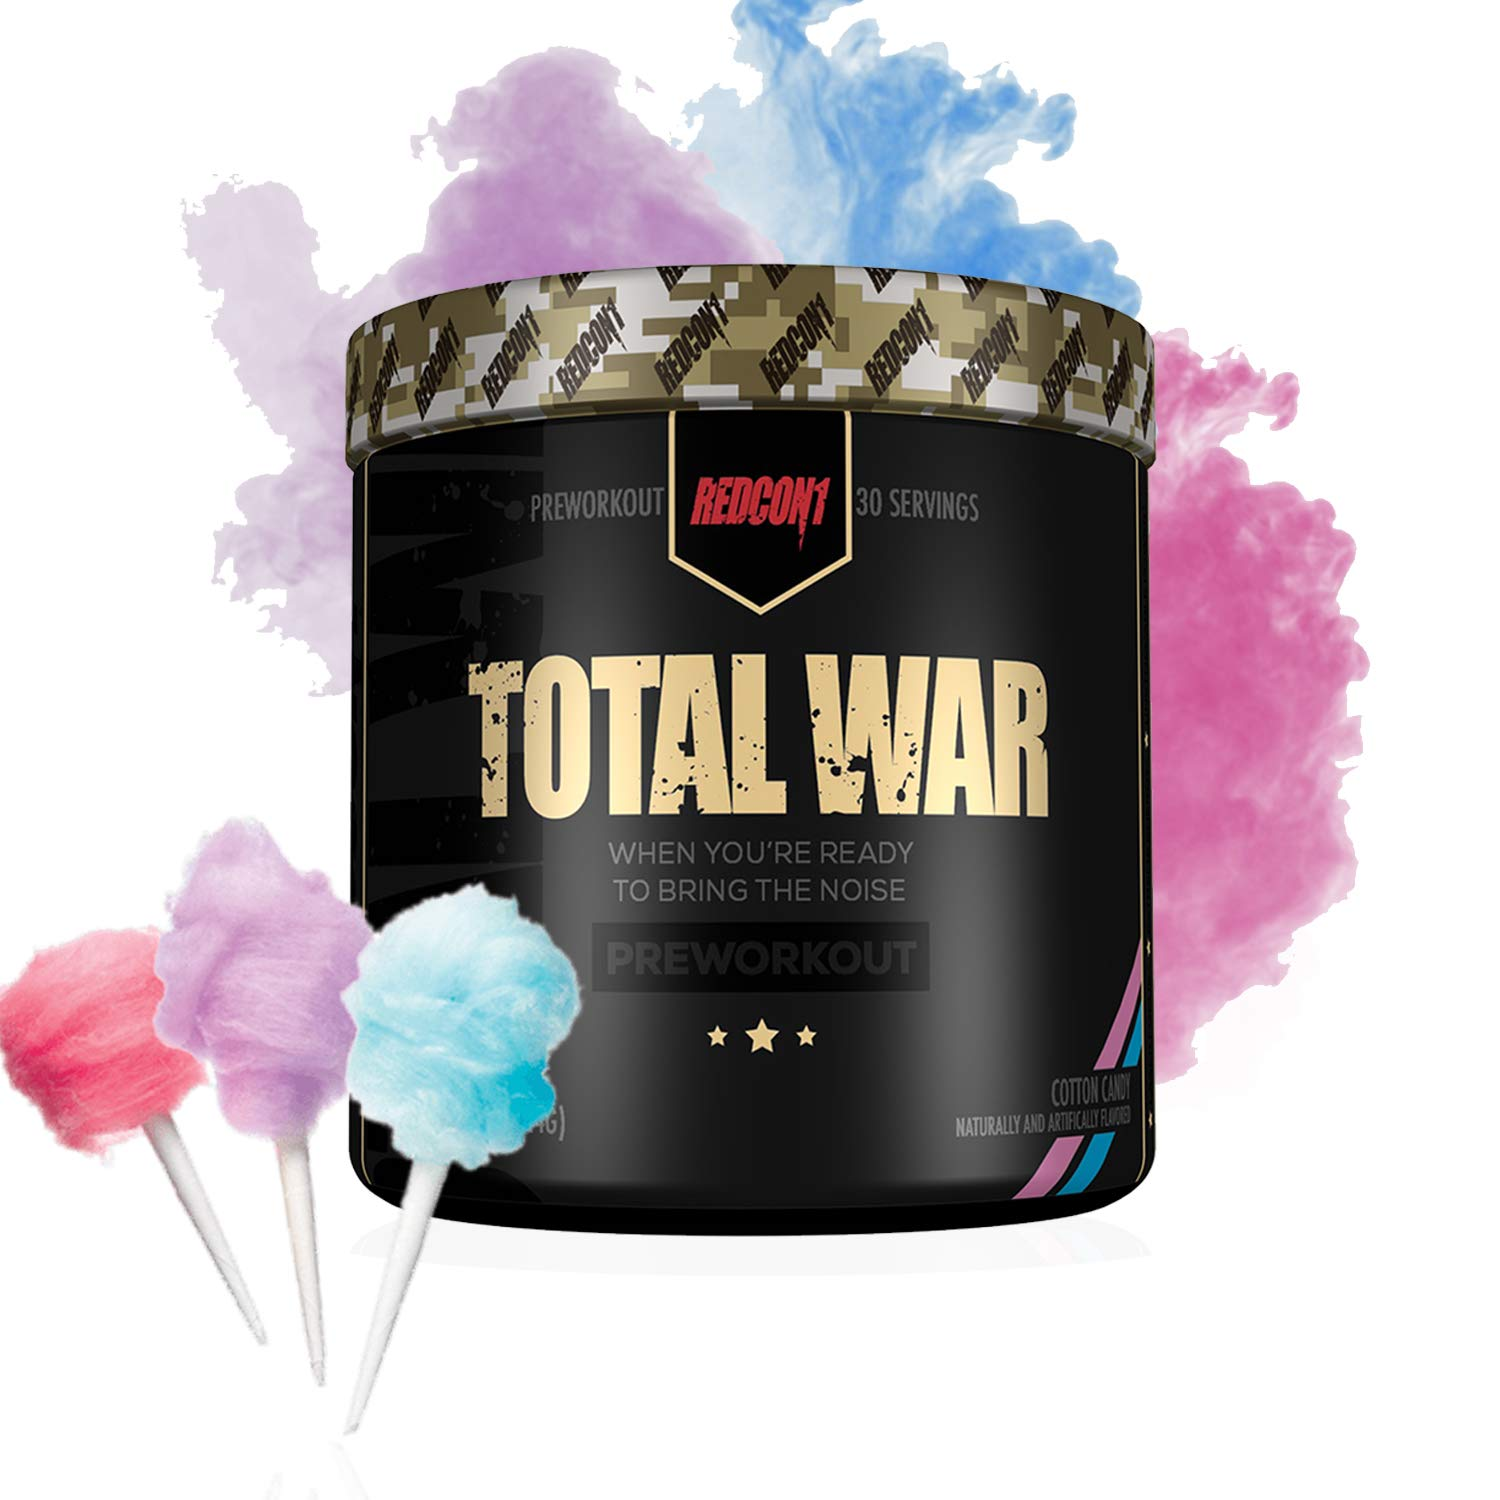 RedCon1 Total War Newly Formulated Pre Workout Energy Powder, Caffeine, Citrulline Malate, Beta-Alanine, Agmatine, Taurine, Caffeine, Nitric Oxide 30 Serving Cotton Candy